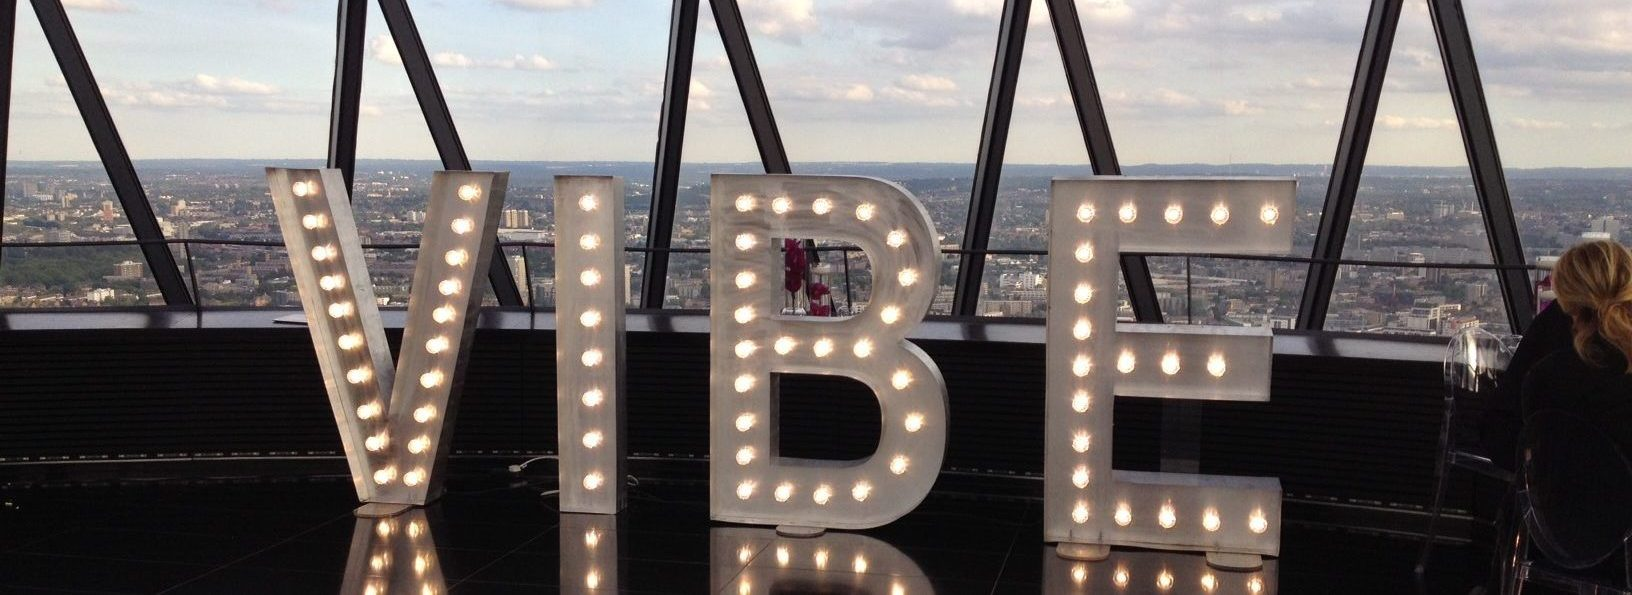 light up letter hire london: Gherkin